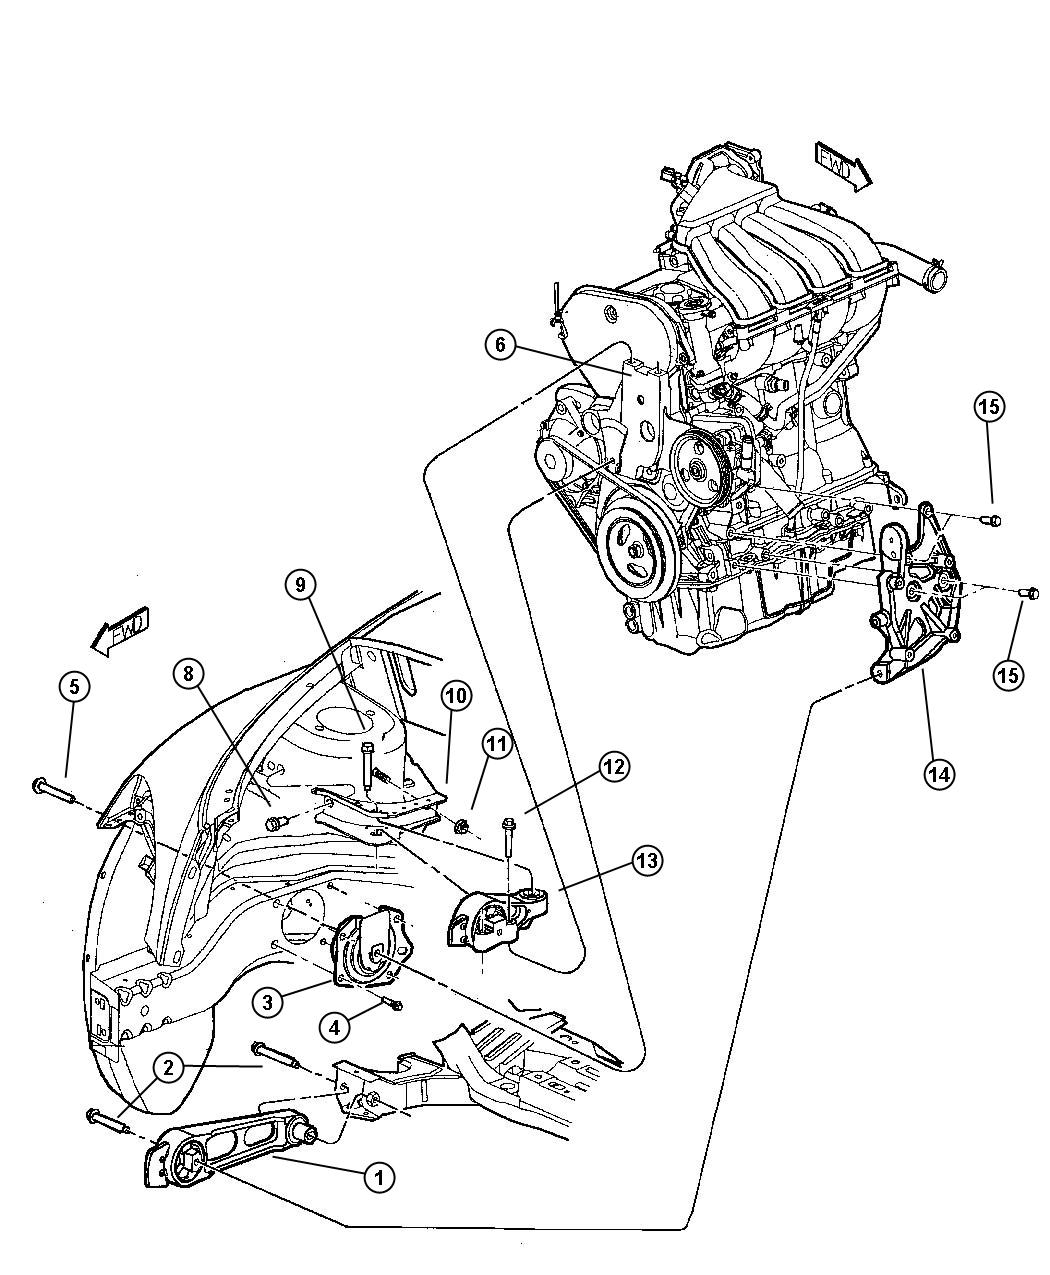 Diagram Pt Cruiser Engine Diagram Full Version Hd